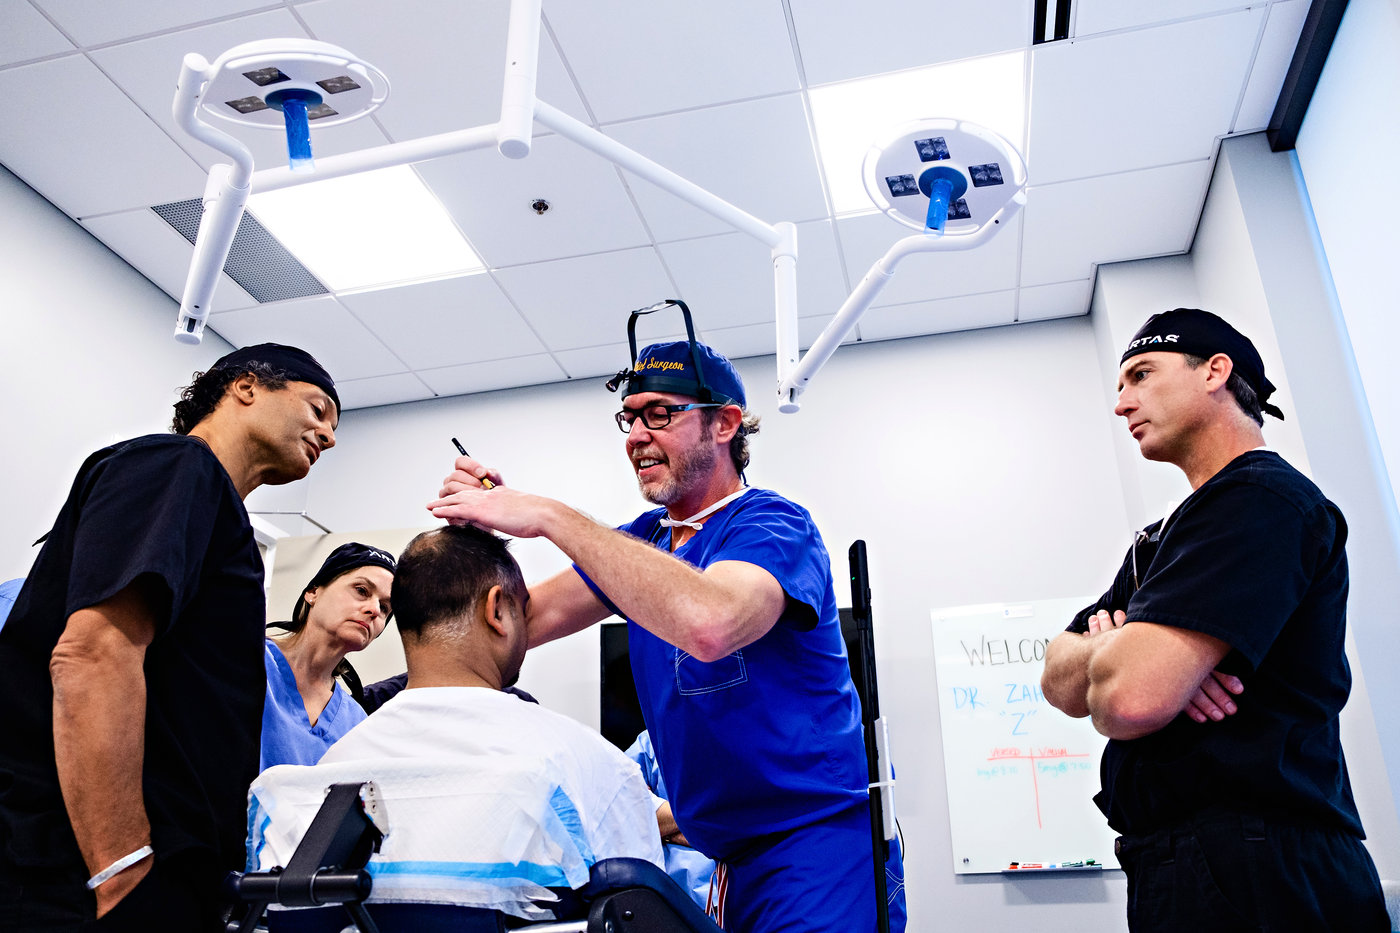 Dr. Ken Anderson teaches a Masters' Class at the American Academy of Hair Restoration Surgery (AAHRS) in Alpharetta, GA in 2019.